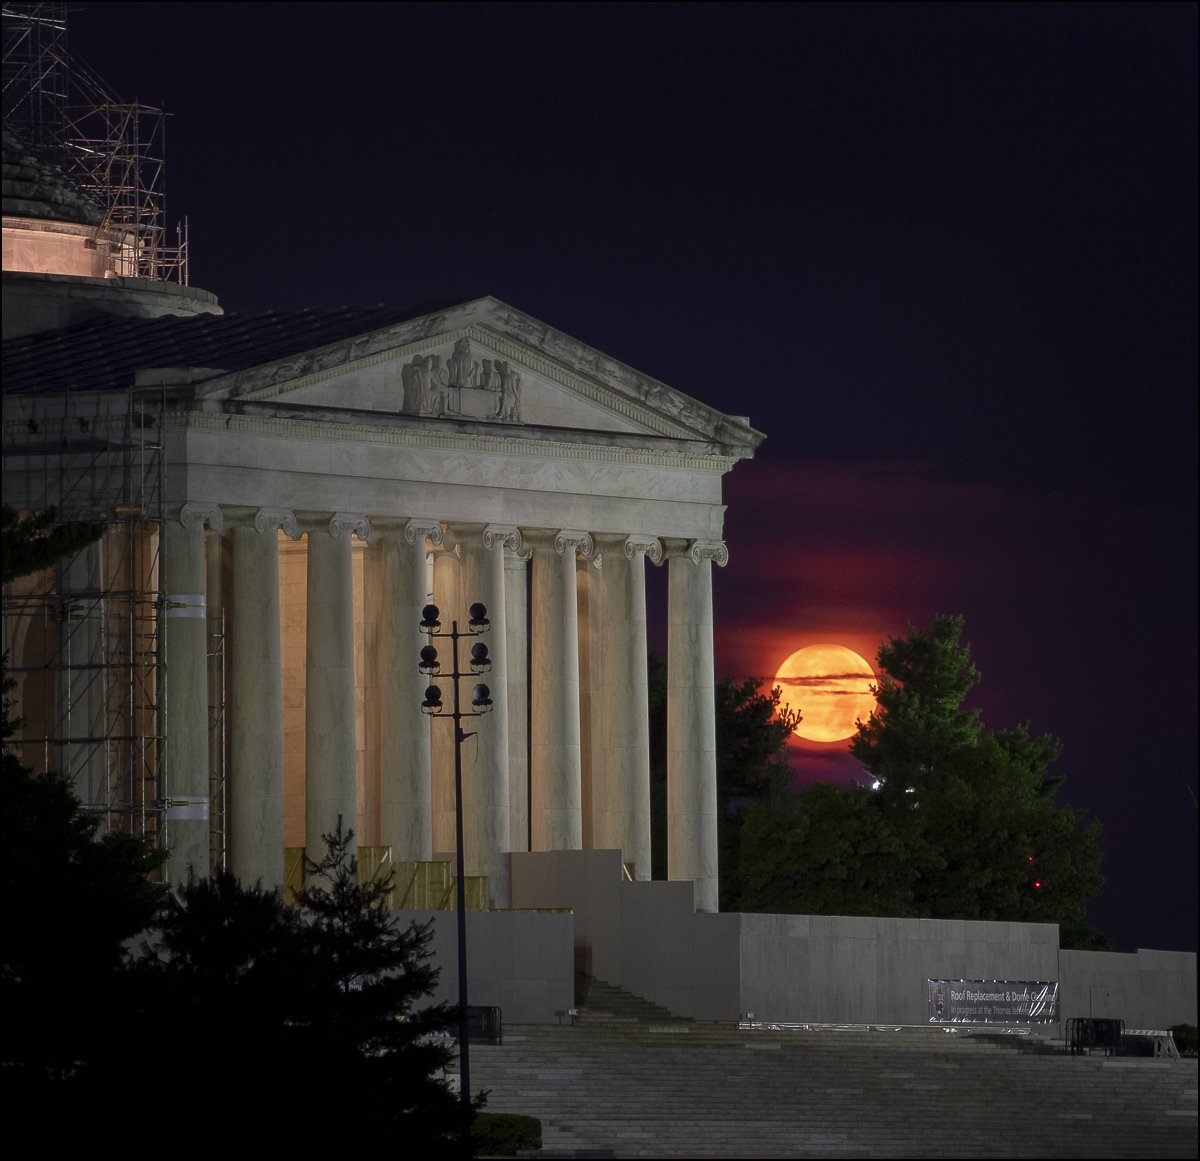 The Moon sets behind the Jefferson Memorial in Washington 50 years to the day after astronauts Neil Armstrong, Michael Collins, and Buzz Aldrin launched on Apollo 11, the first mission to land astronauts on the Moon. #Apollo50th - flic.kr/p/2gA21u8